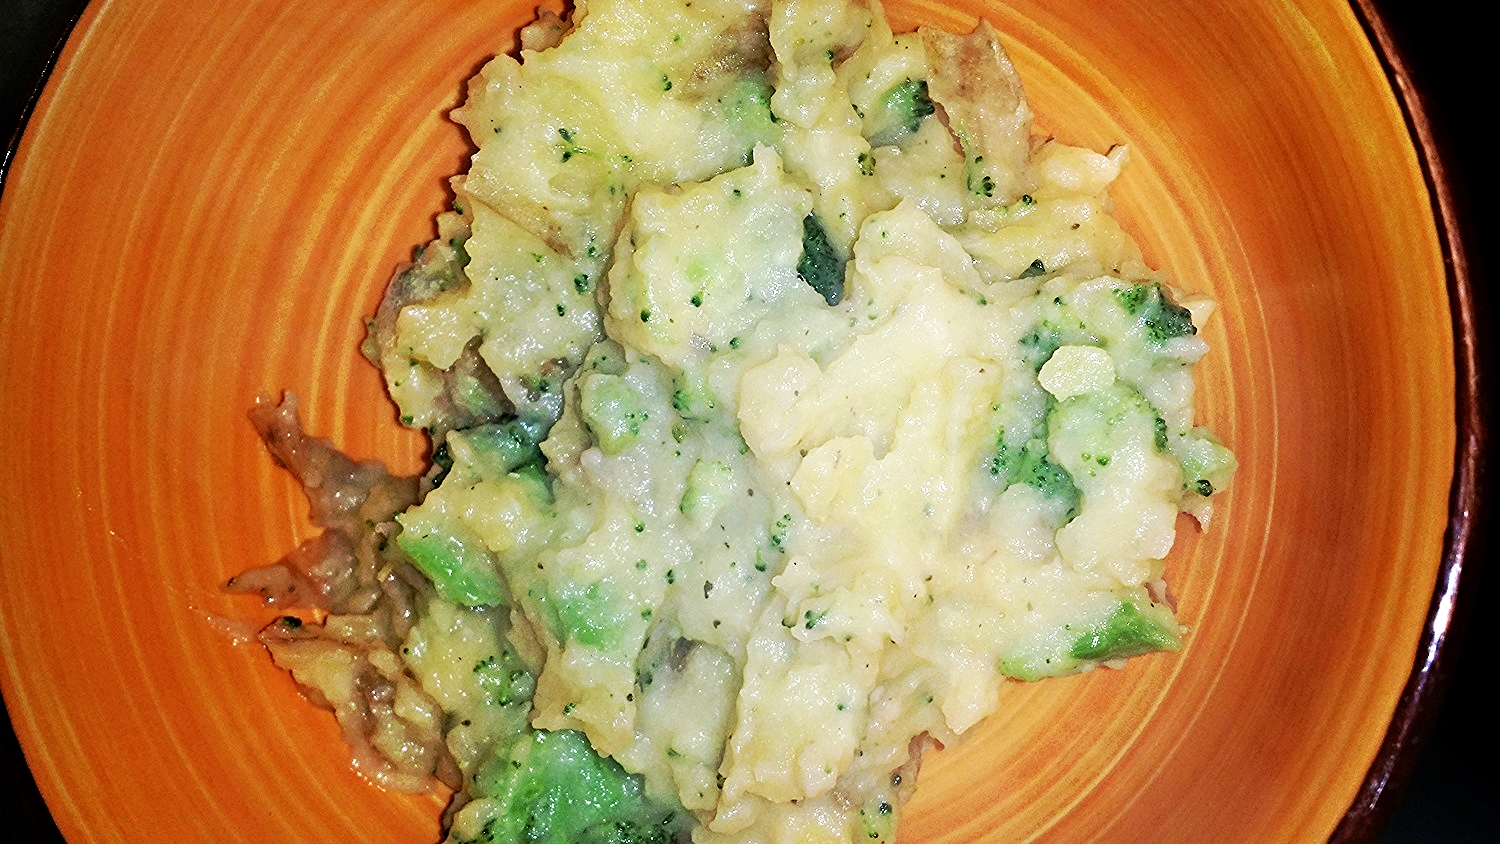 Completed Broccoli and Cheese Mashed Potatoes